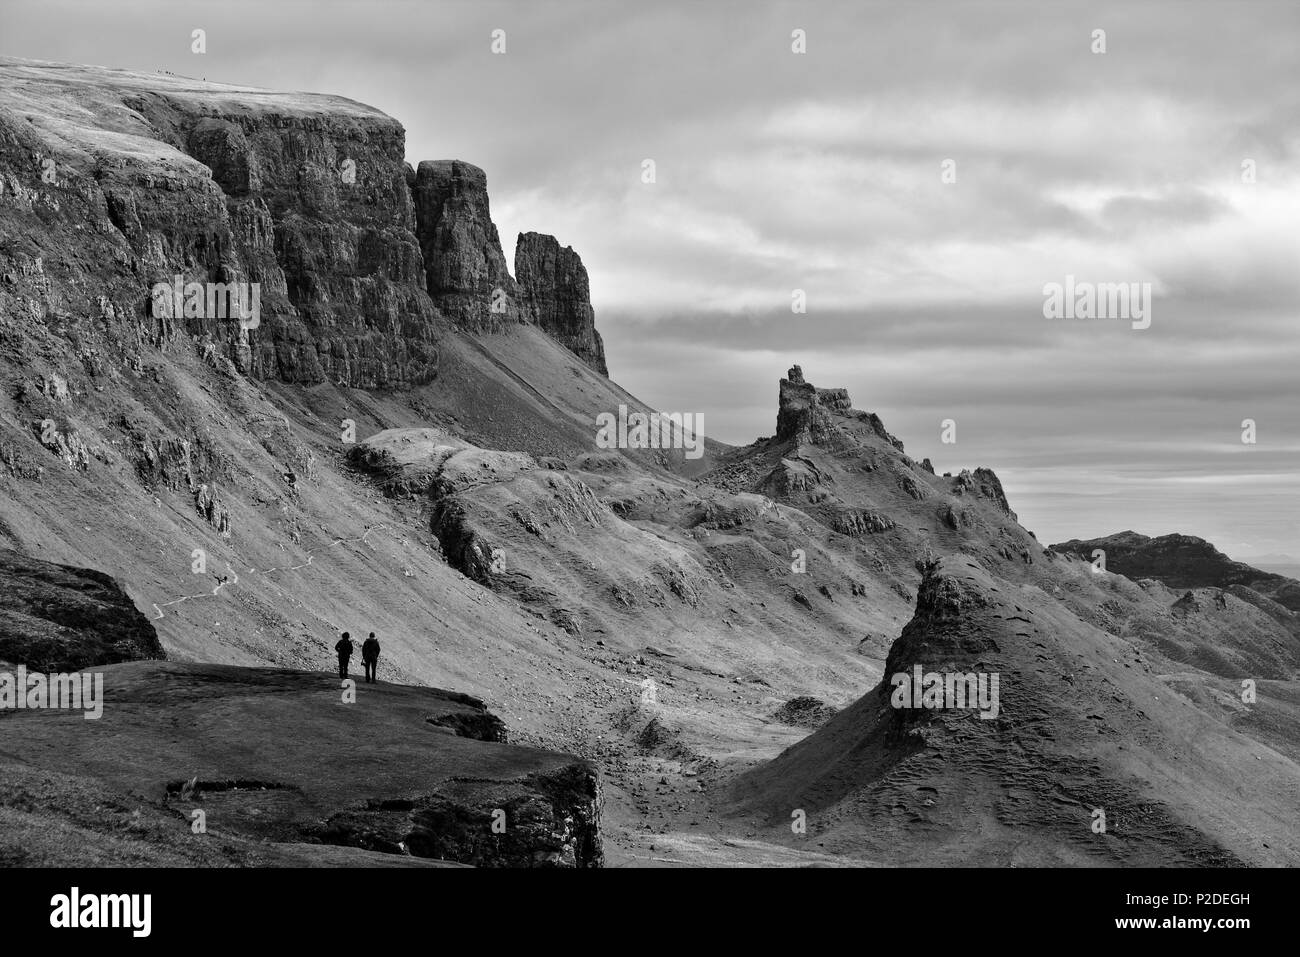 Quiraing, Isle of Skye, Scotland - Bizarre rocky landscape with two human figures standing on a cliff in the foreground - Stock Image